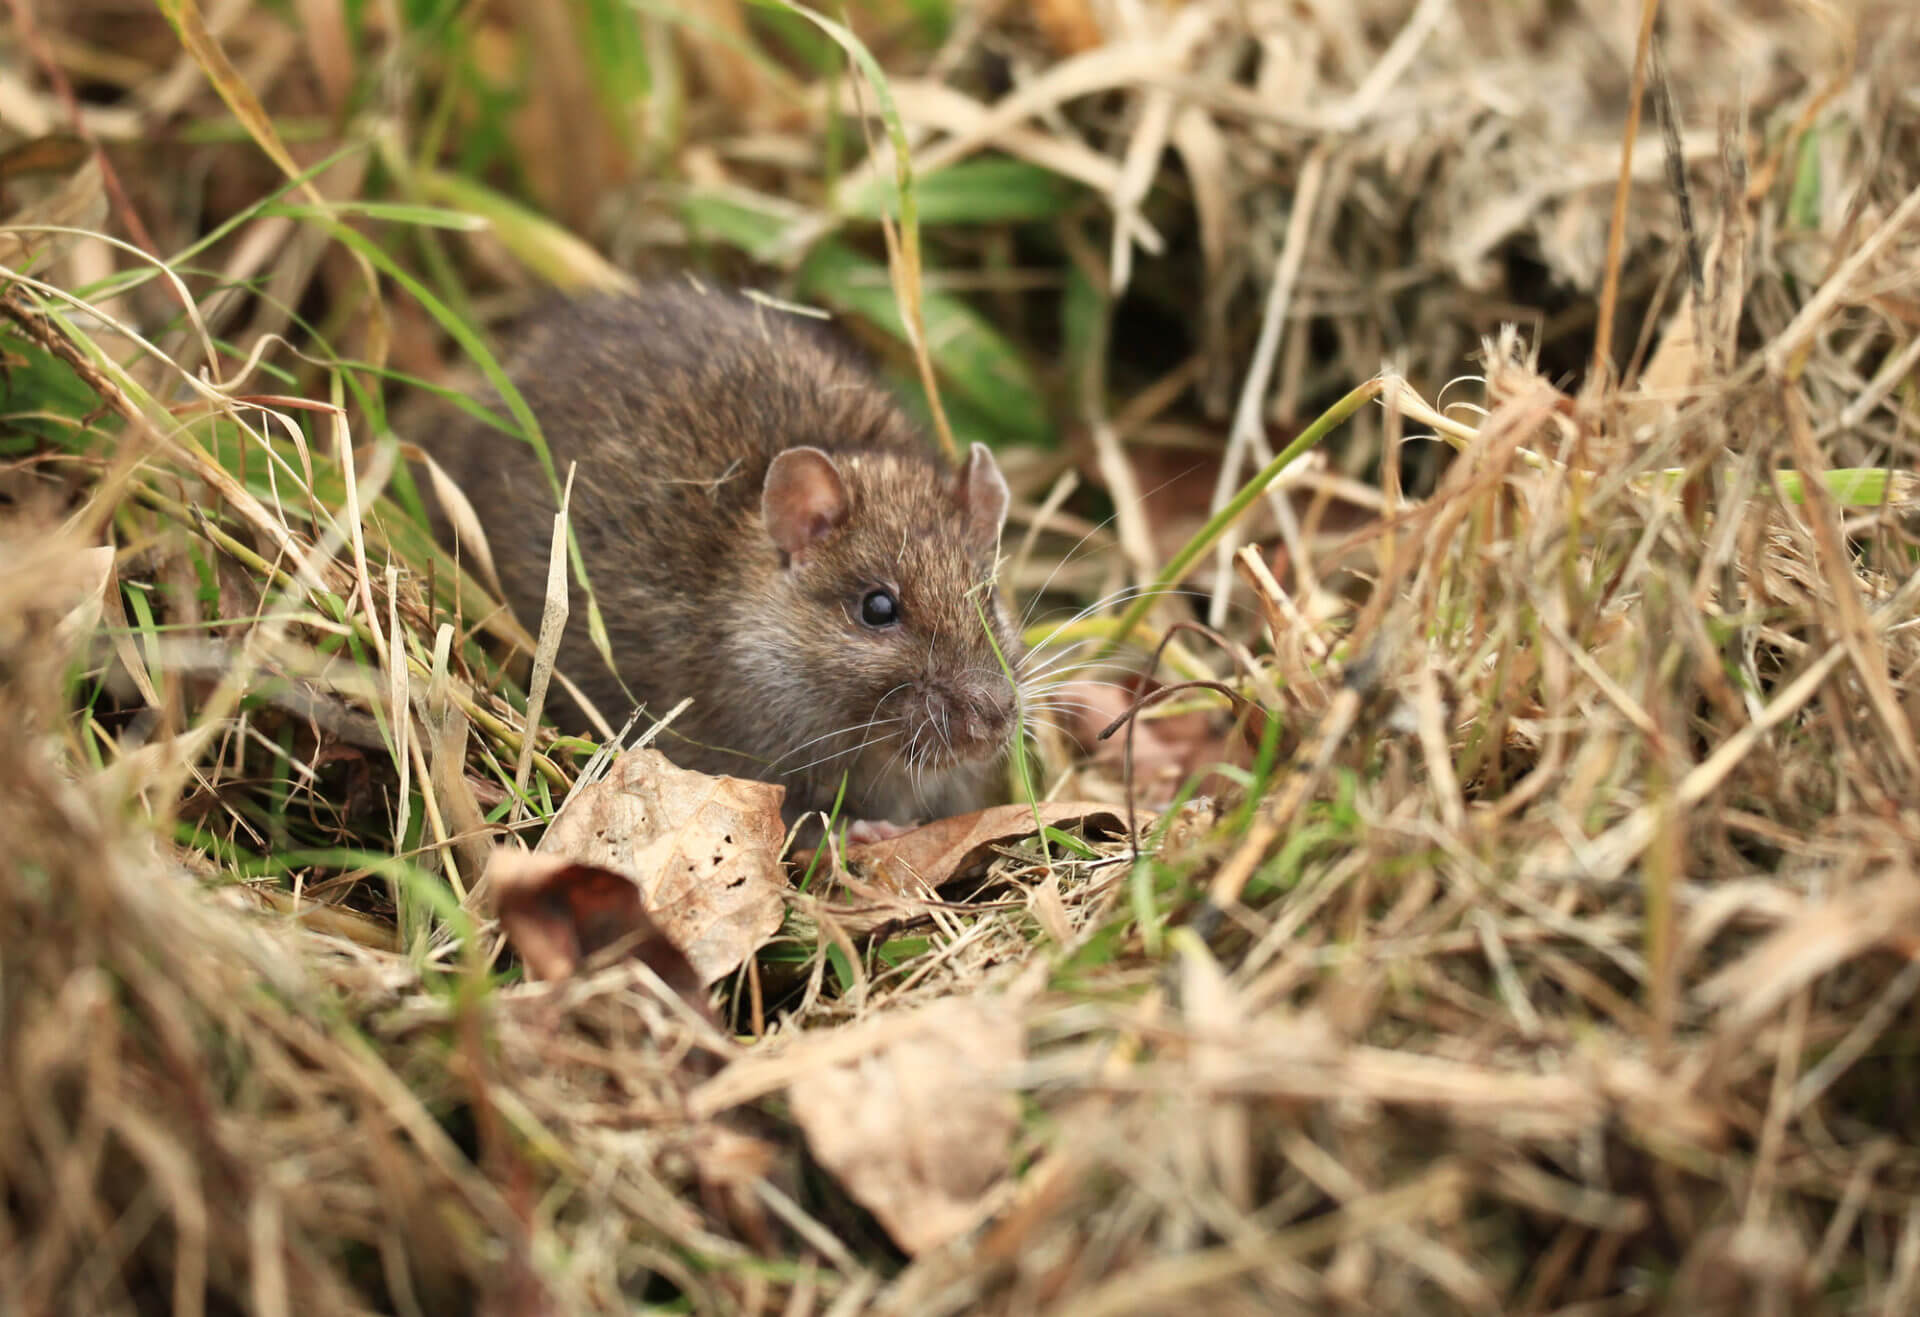 Common Myths About Rodents